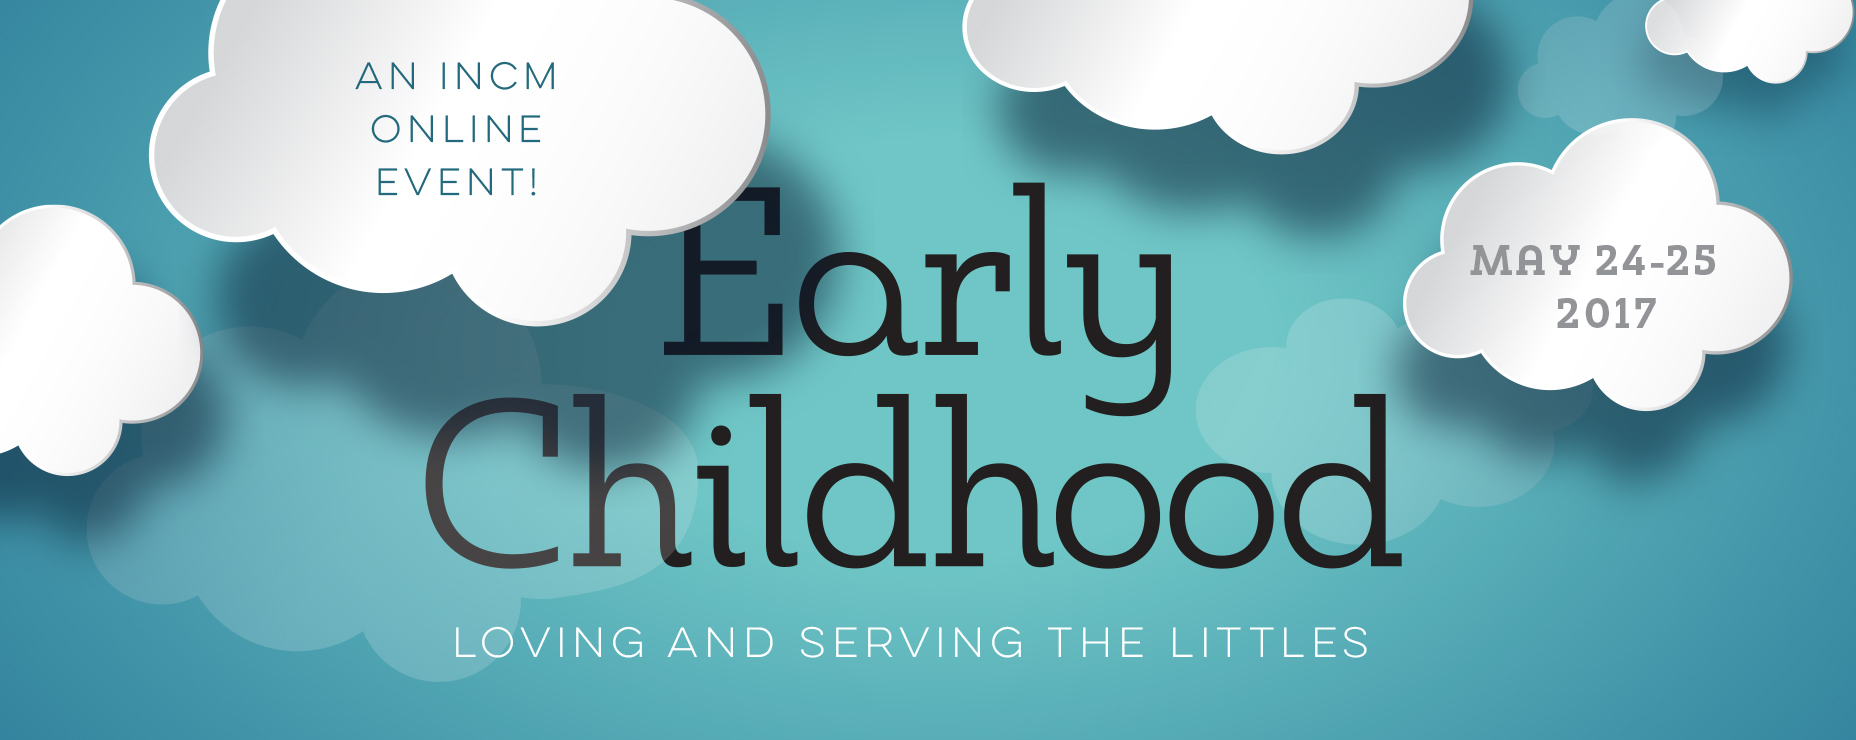 Early Childhood Online Event